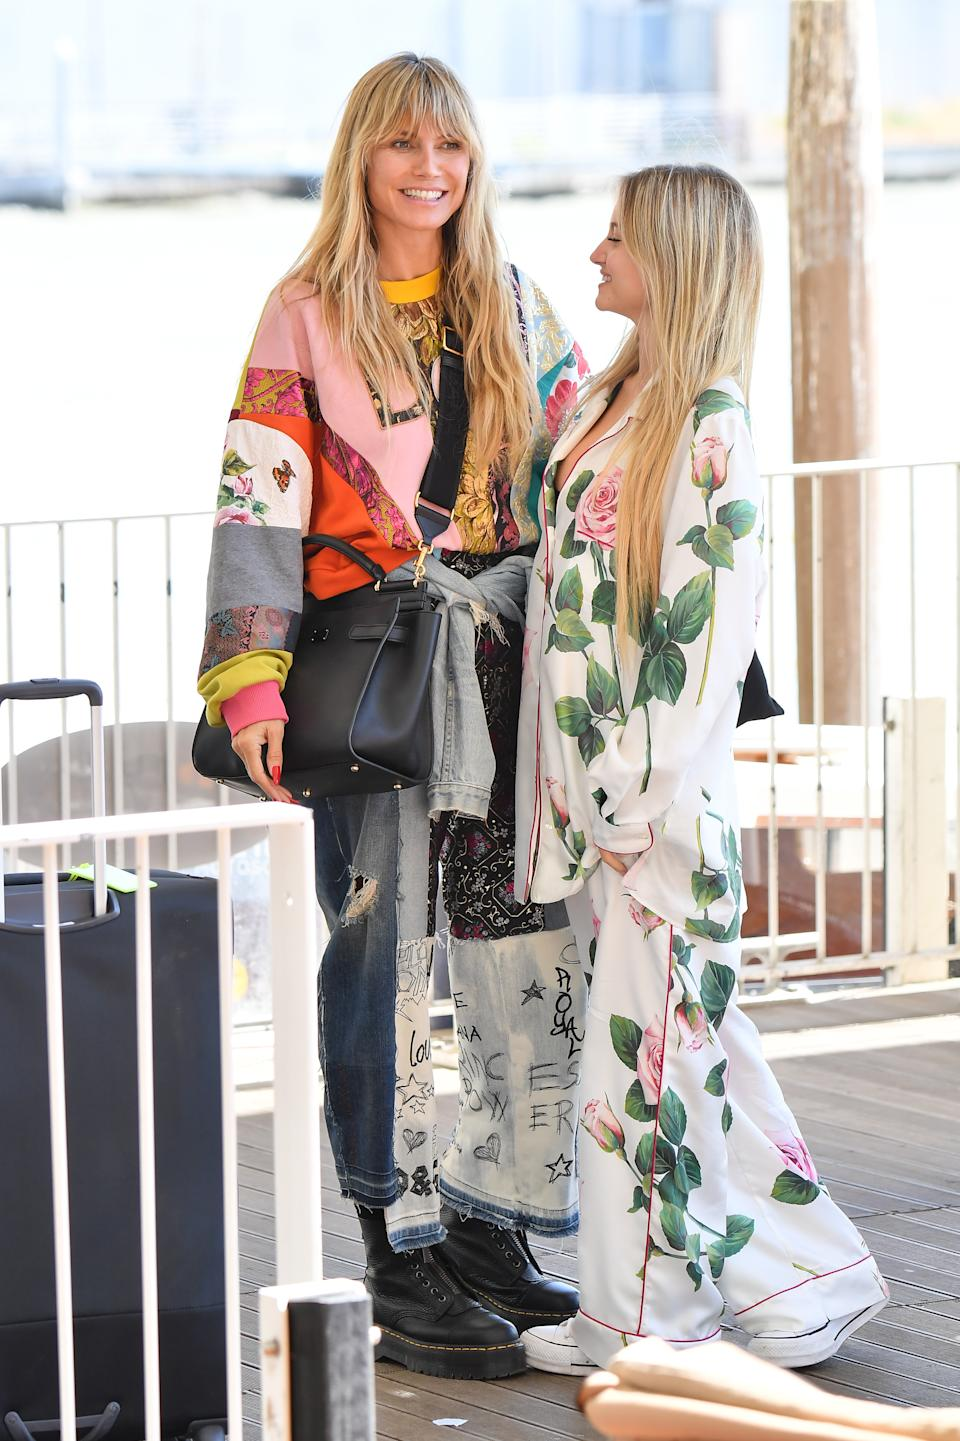 Heidi Klum smiling with her daughter Leni klum wearing a pair of $280 Dr. Martens Sinclair boots in venice, italy